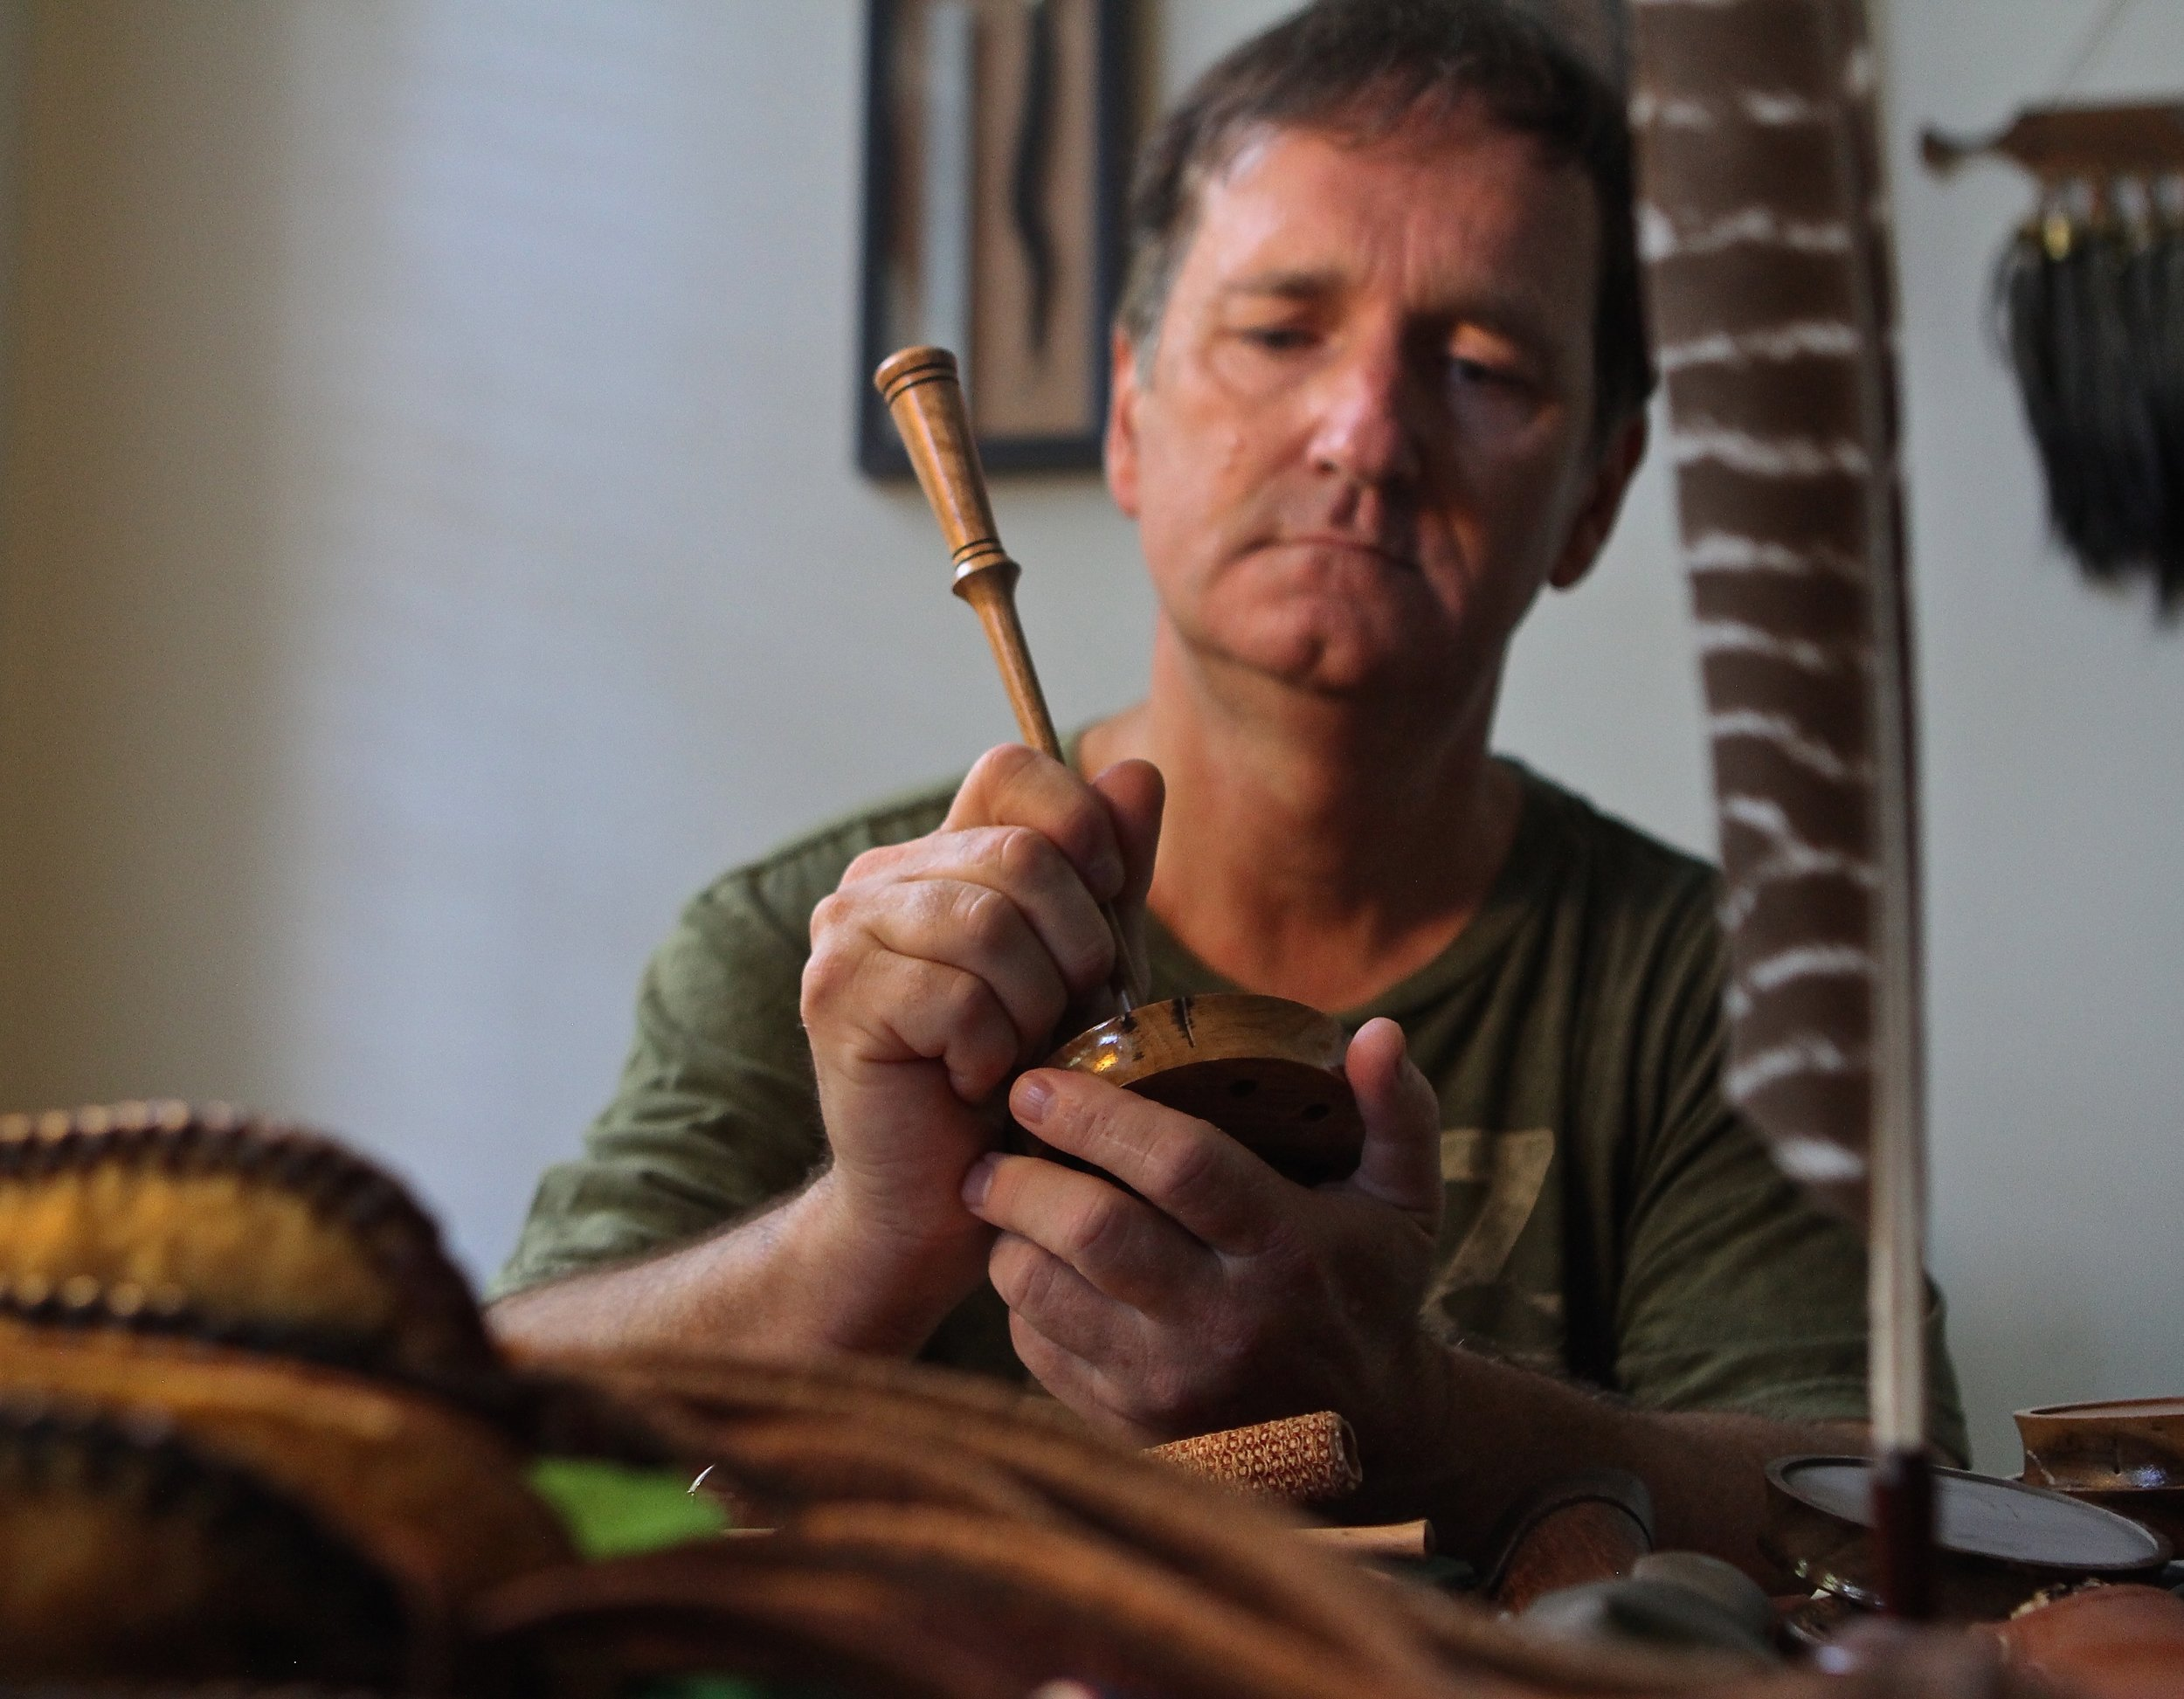 Mike demonstrating one of his turkey calls.